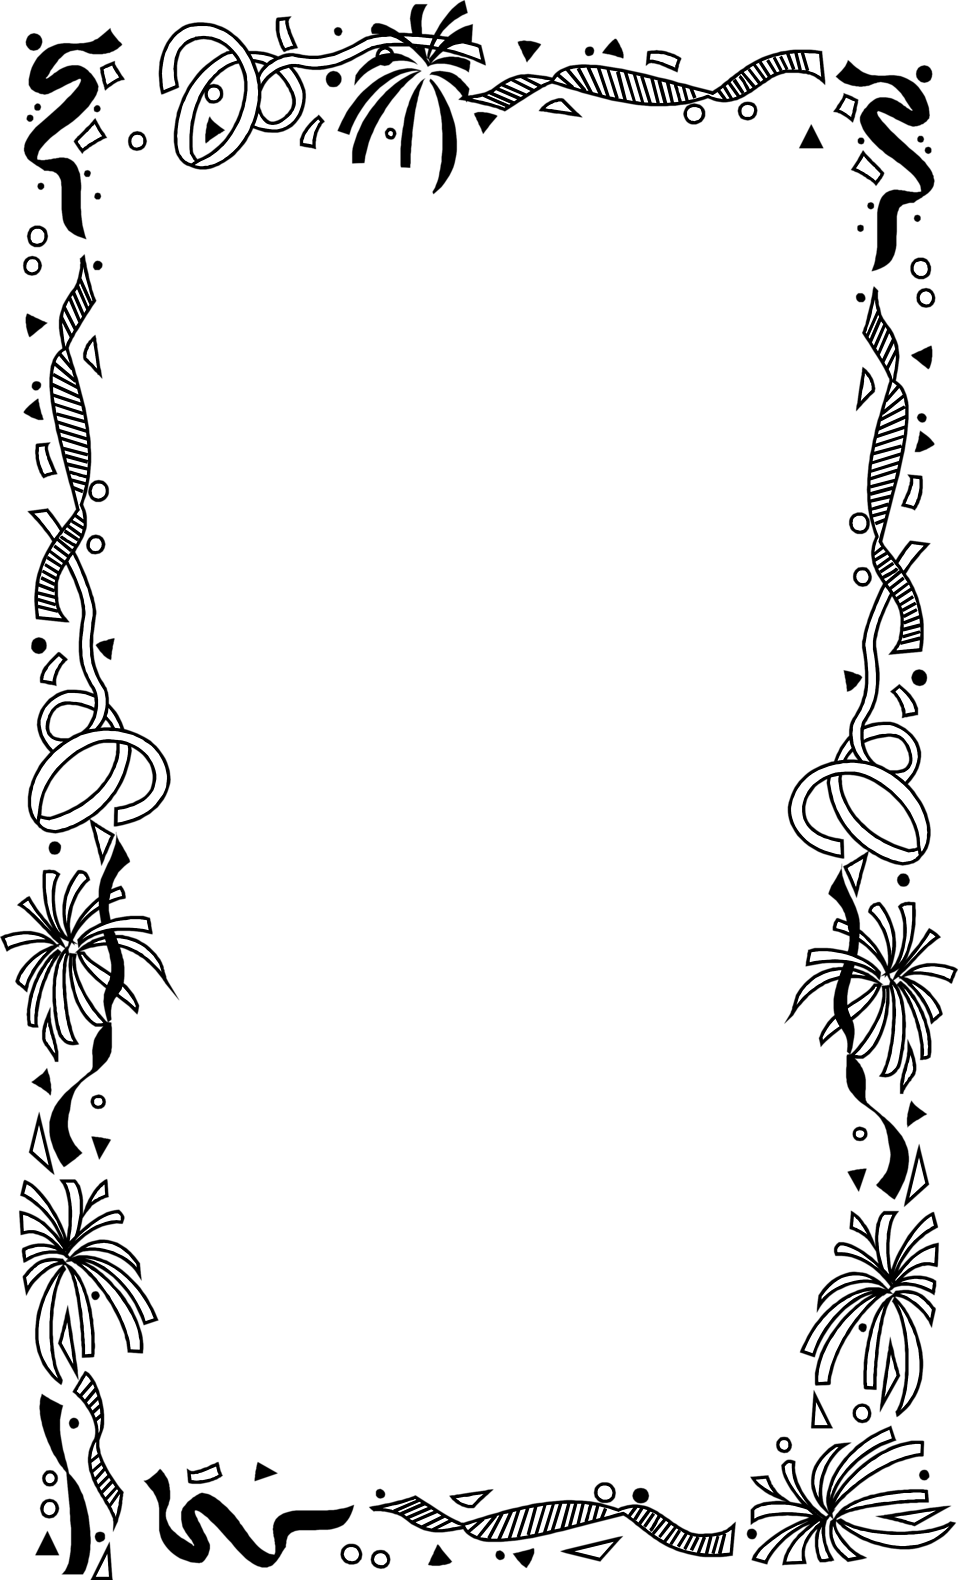 Illustration of a blank frame border with confetti : Free.